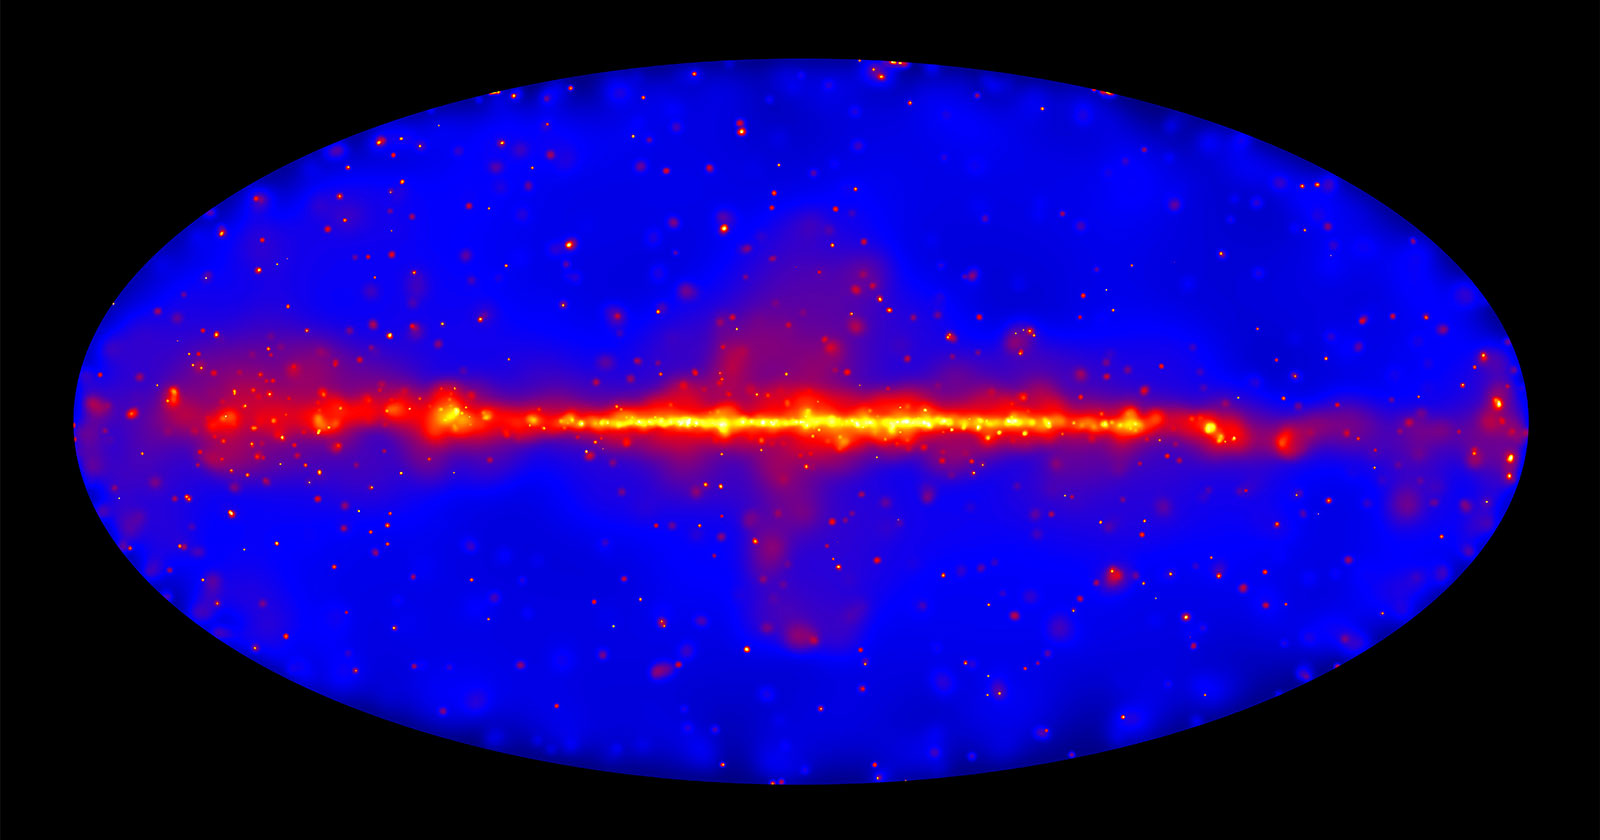 Band of bright red light representing high energy concentrations in our galaxy.